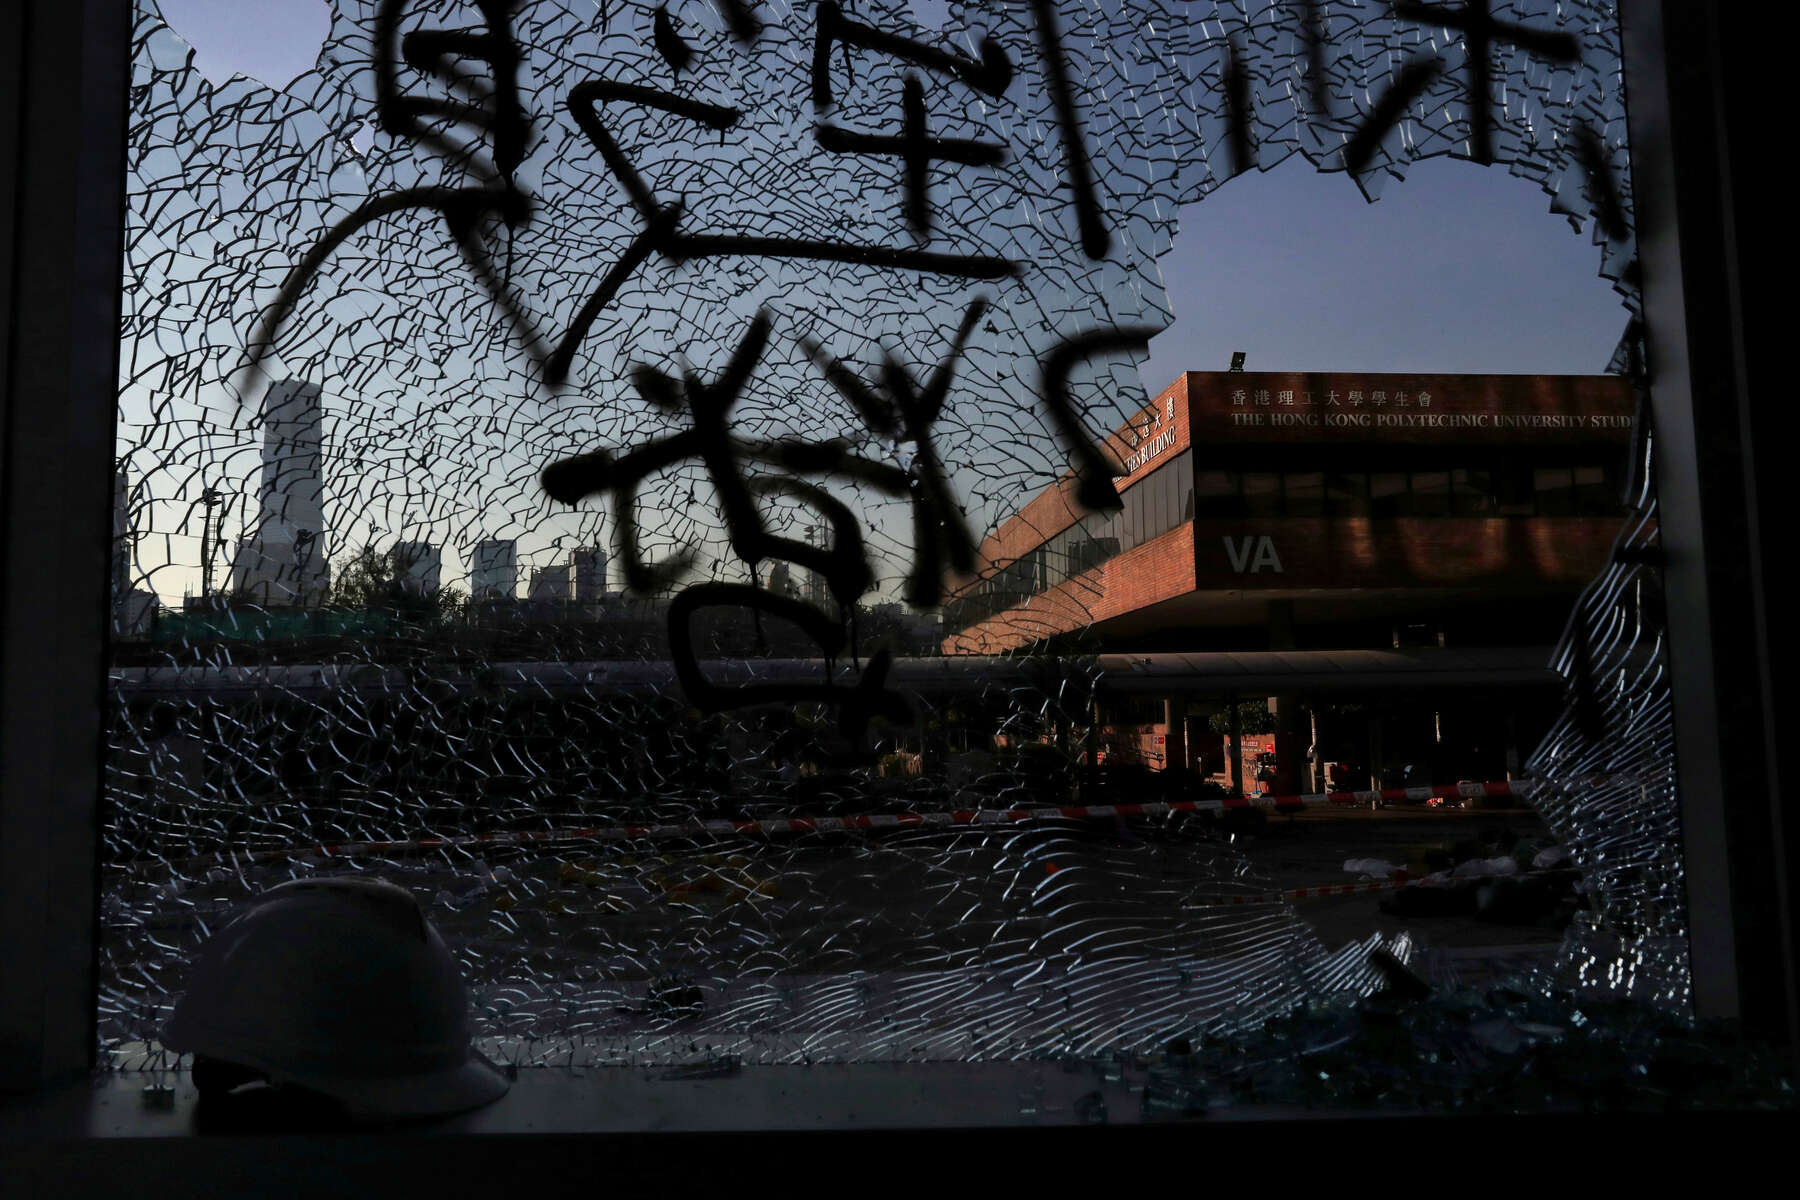 Shattered glass is seen at Hong Kong Polytechnic University (PolyU), in Hong Kong, China November 22, 2019. The wrecked campus went from a battle ground to a ghost town with rumors of handfuls of protesters hidden throughout the vast space. Surrendering to police came with a charge of {quote}rioting{quote} which can come with up to 10 years in prison. Many protesters were arrested in the first few hectic days, others escaped via increasingly dramatic ways, including through the sewer system.